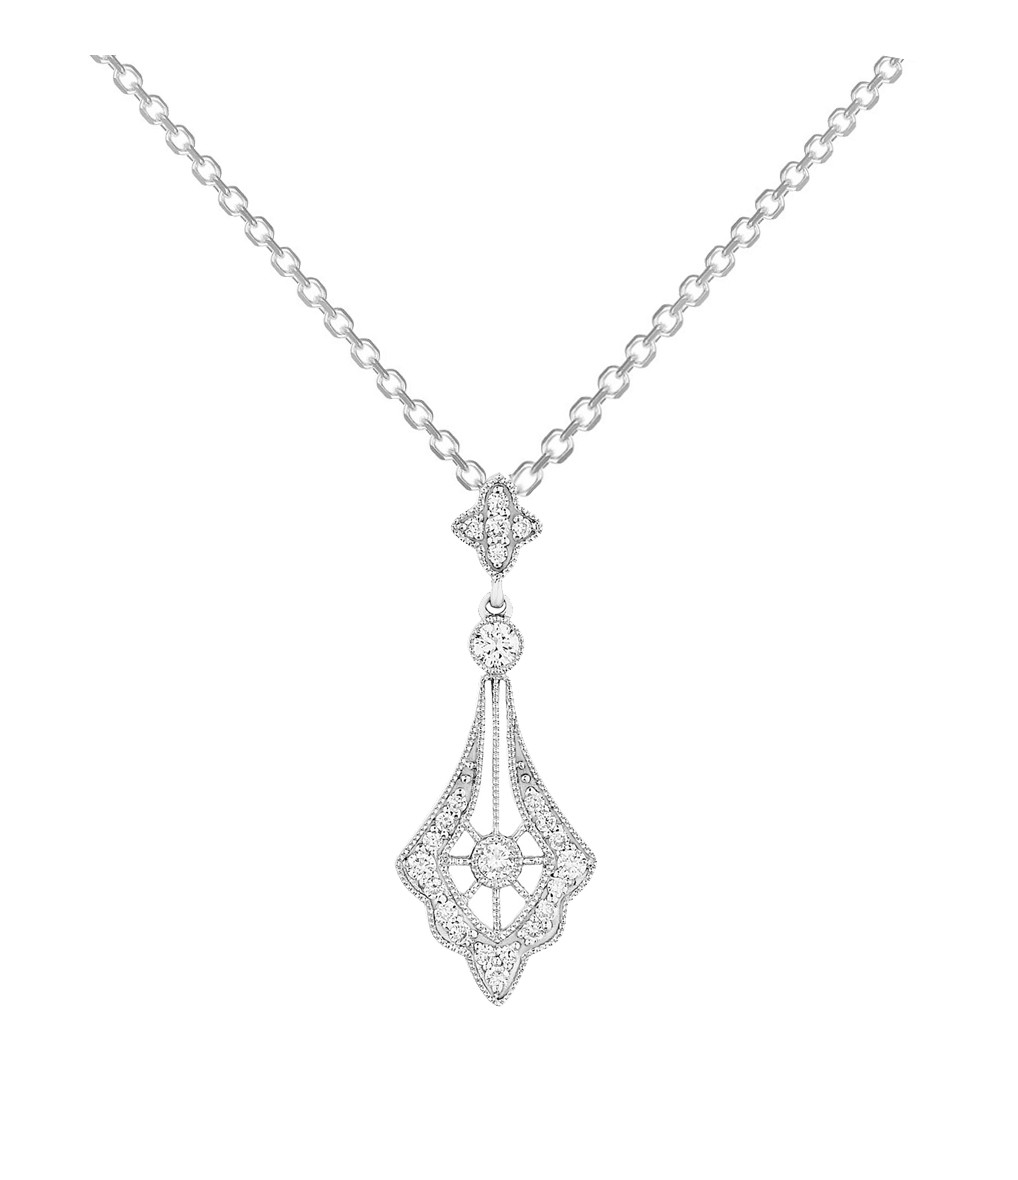 STONE PARIS - Collier Belle Epoque Or Diamants